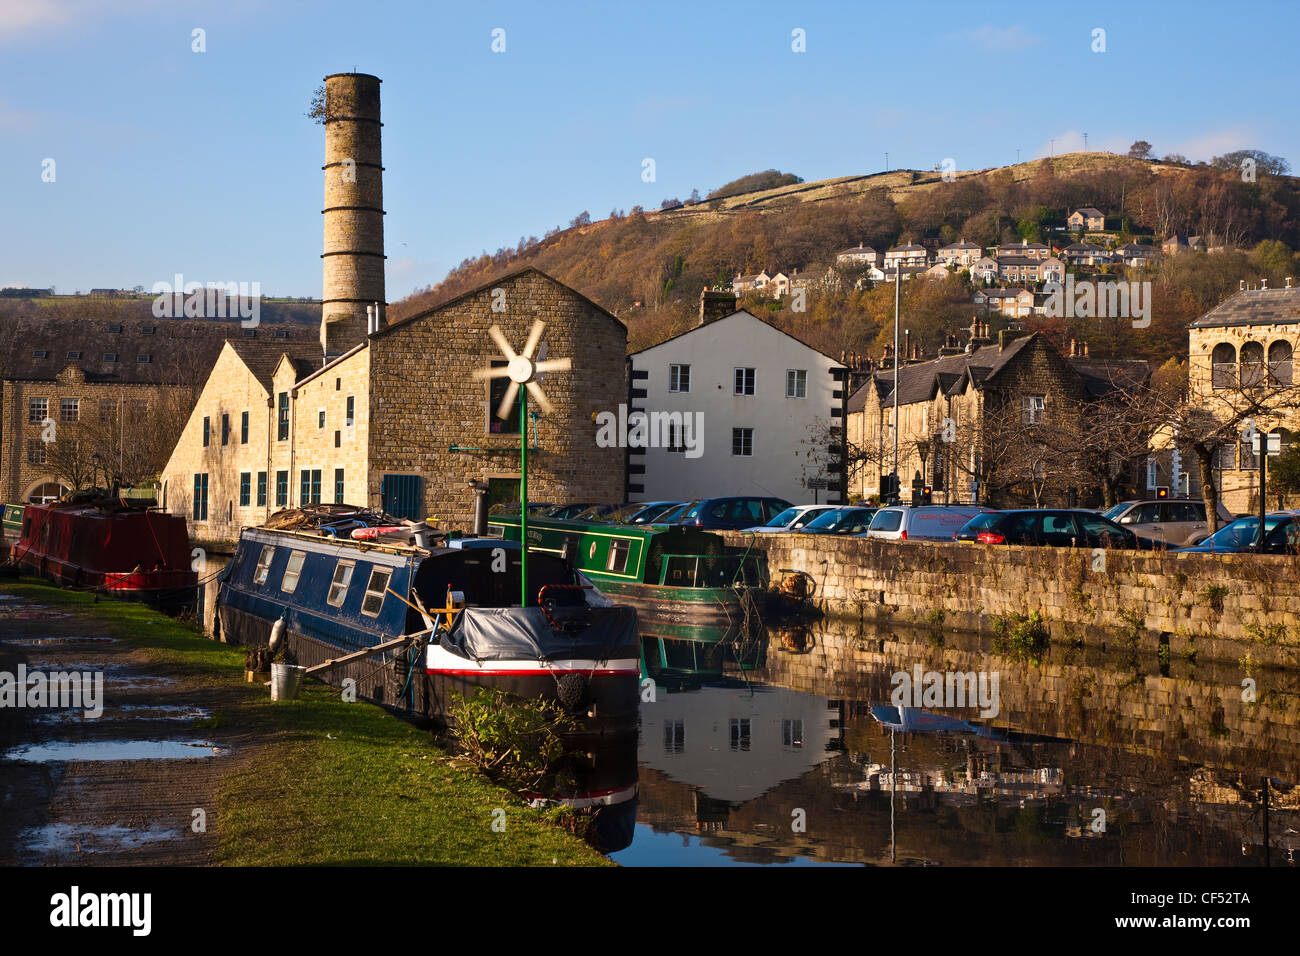 Barges on the Rochdale canal at Hebden Bridge in Calderdale. - Stock Image